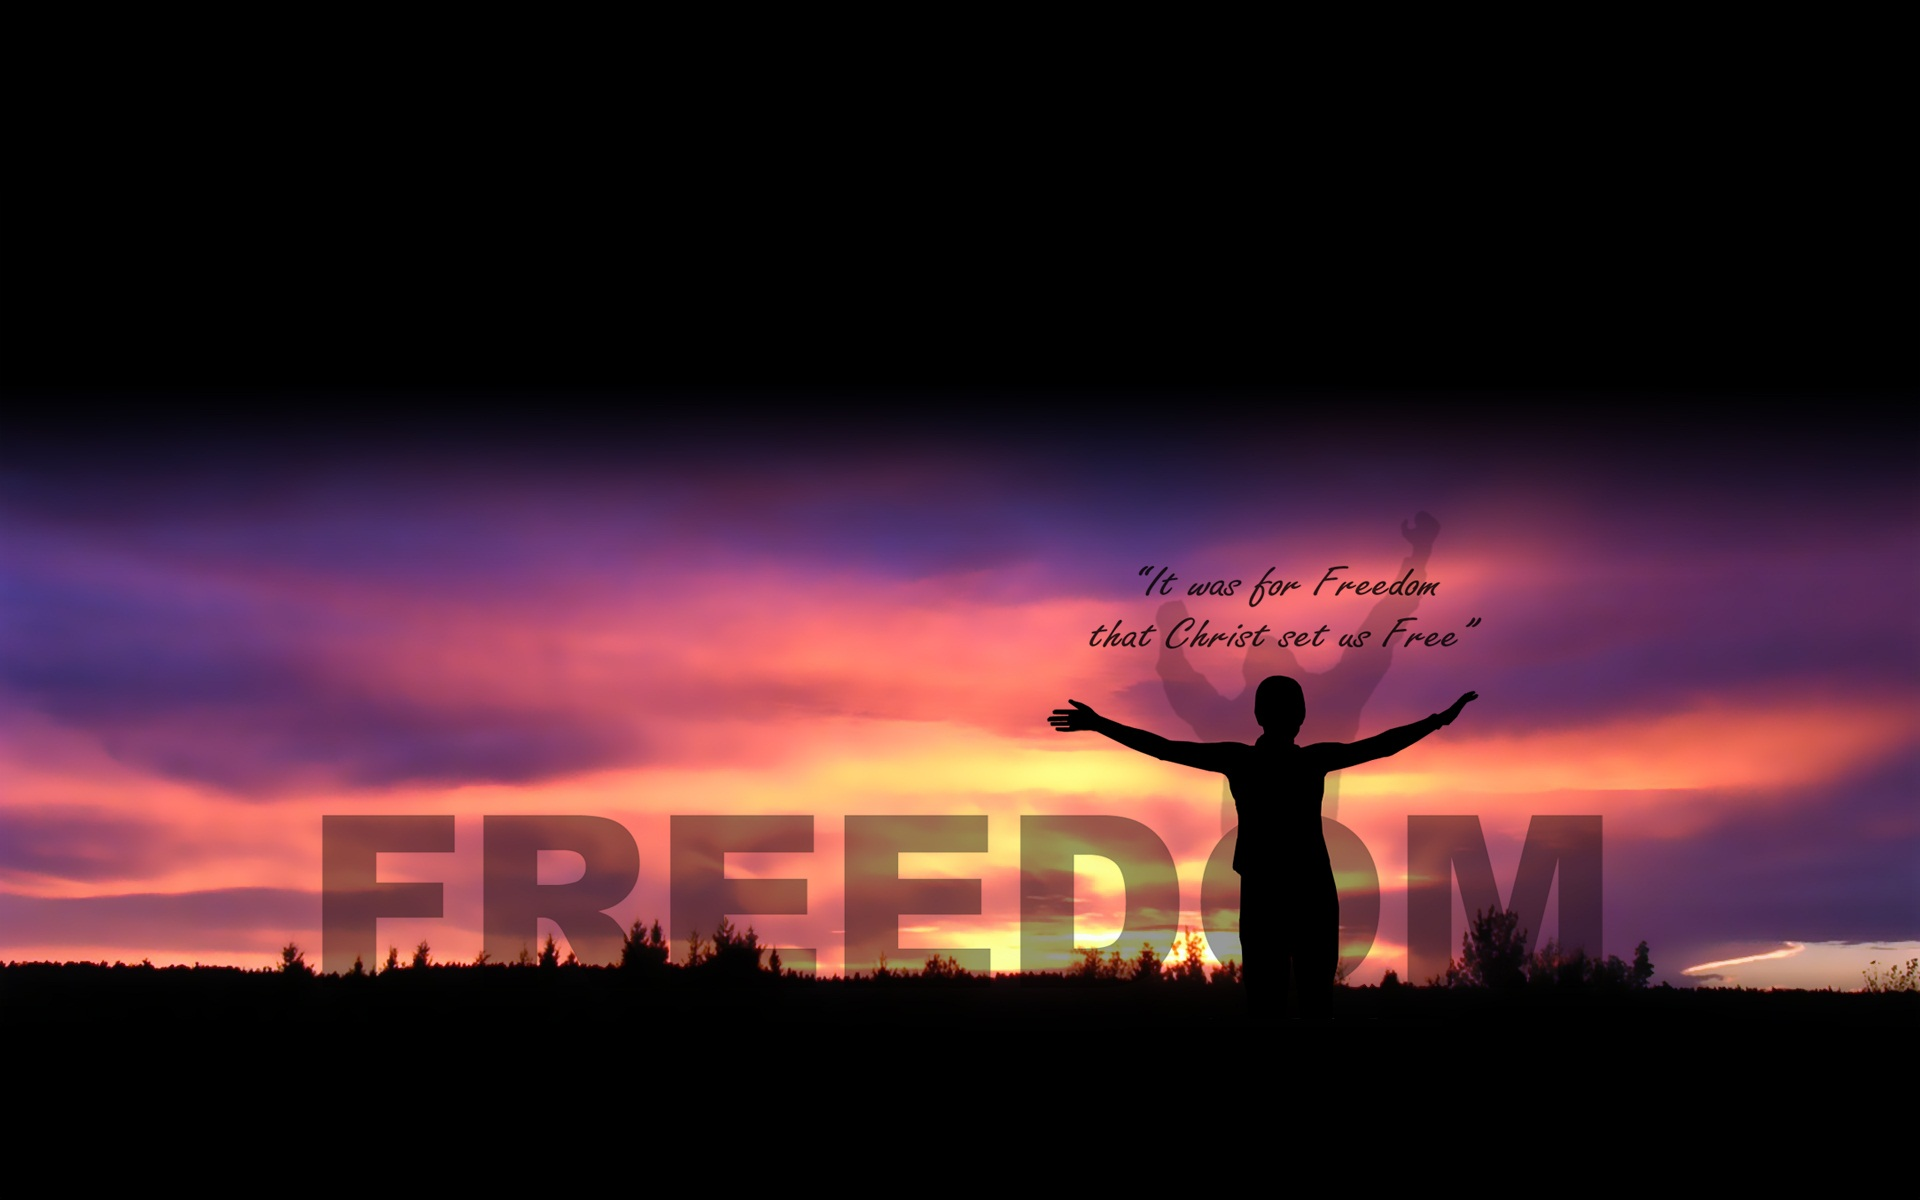 desktop backgrounds free christian desktop backgrounds desktop